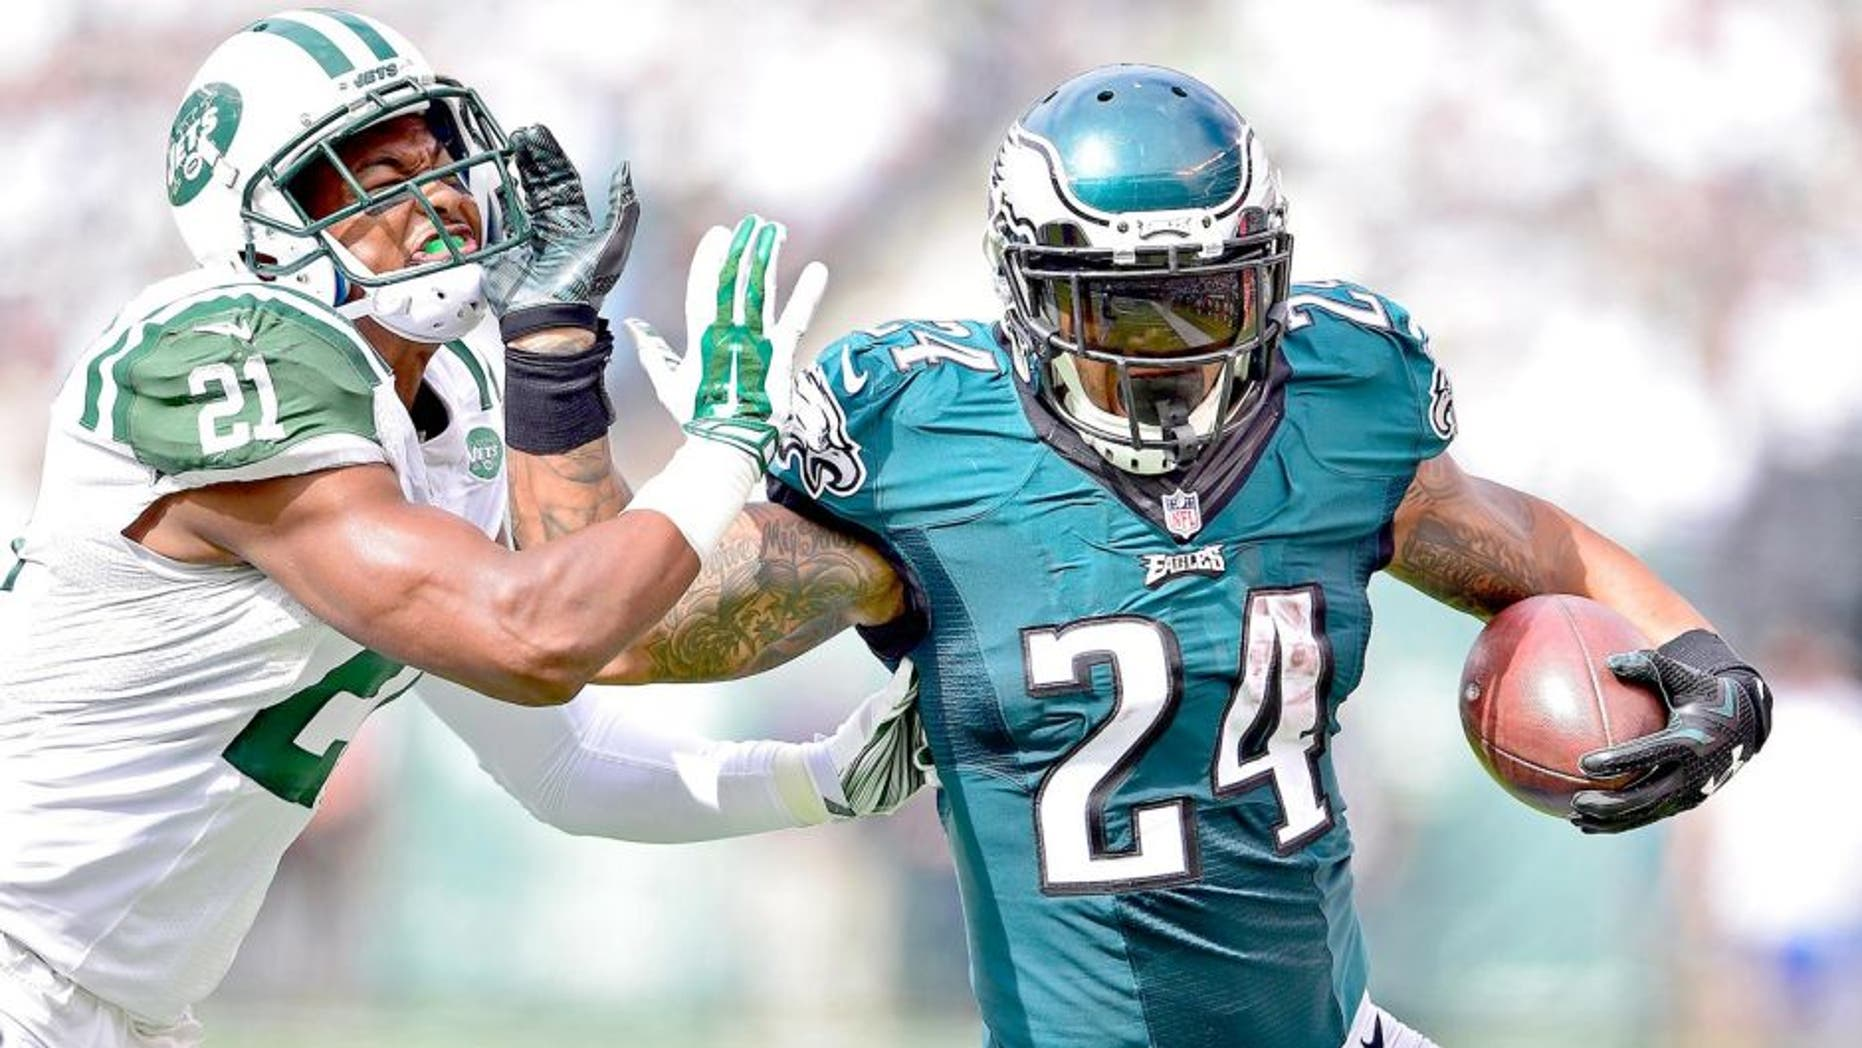 Sep 27, 2015; East Rutherford, NJ, USA; Philadelphia Eagles running back Ryan Mathews (24) stiff arms New York Jets strong safety Marcus Gilchrist (21) to gain extra yards at MetLife Stadium. Mandatory Credit: Steven Ryan-USA TODAY Sports